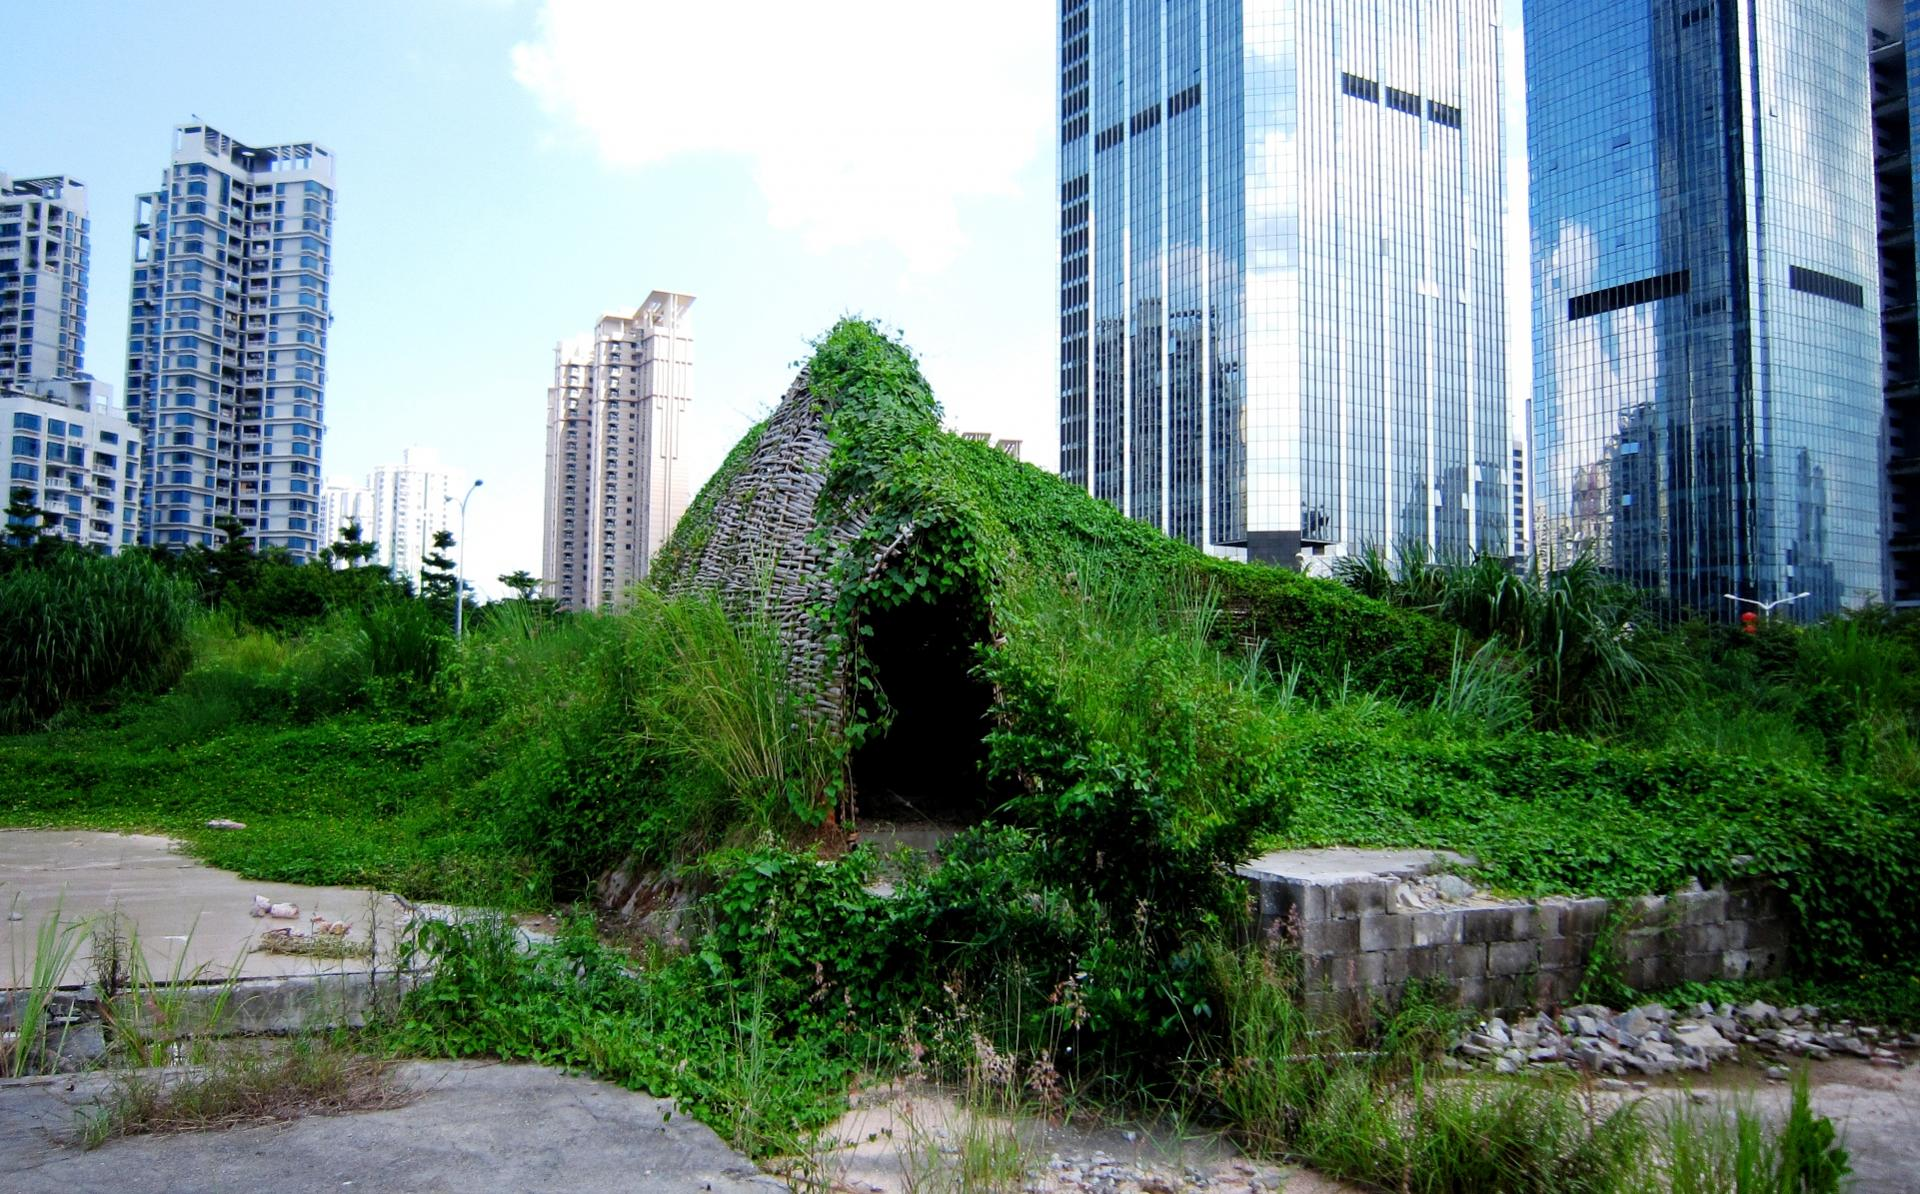 Bug dome by weak in shenzhen wikimedia commons